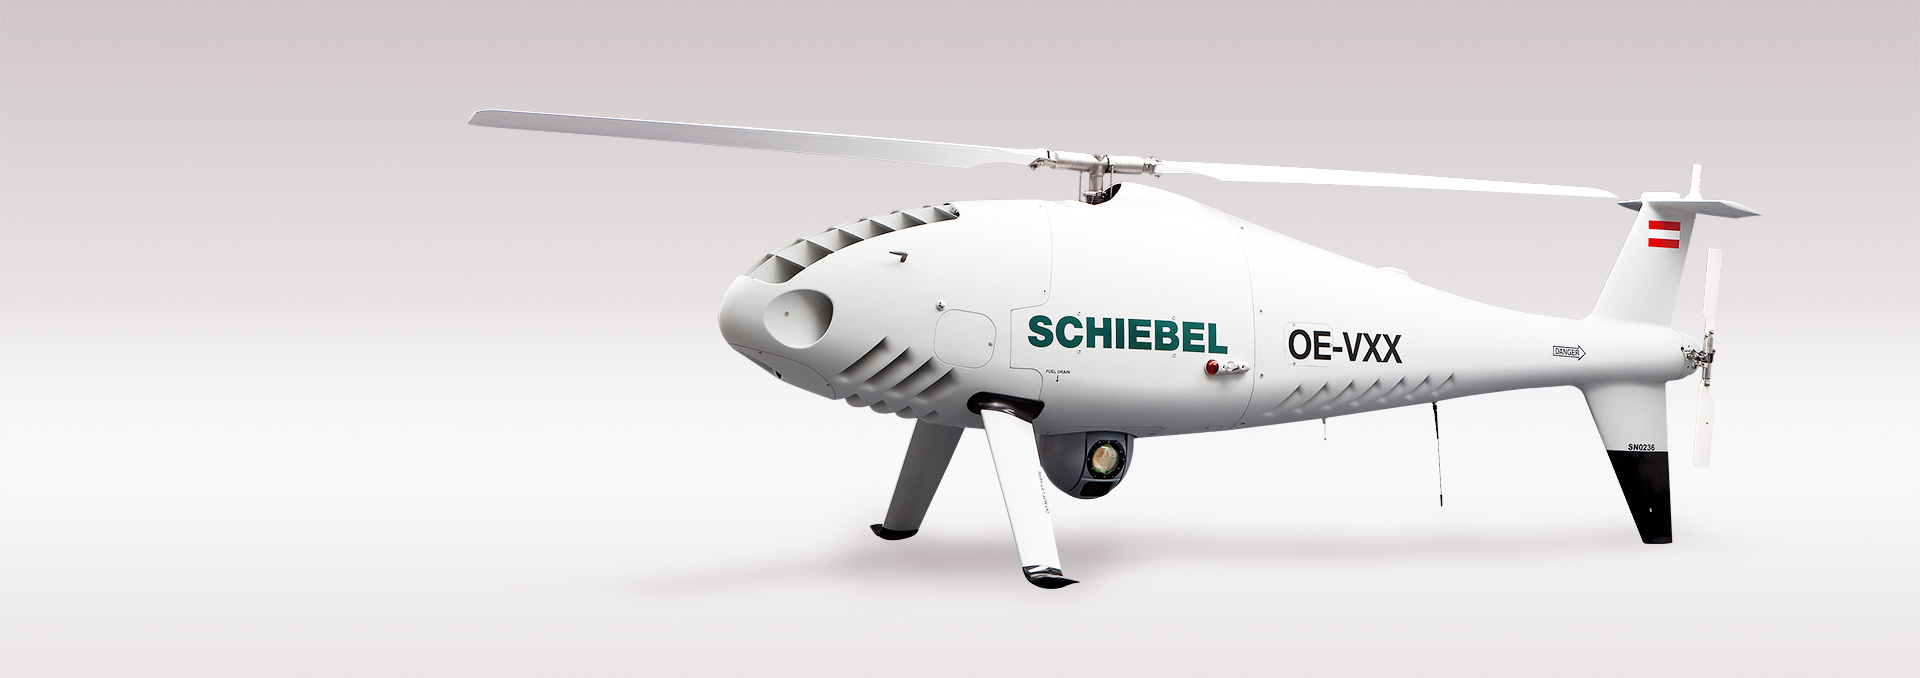 Dual Dash Cam >> CAMCOPTER® S-100 System - Schiebel